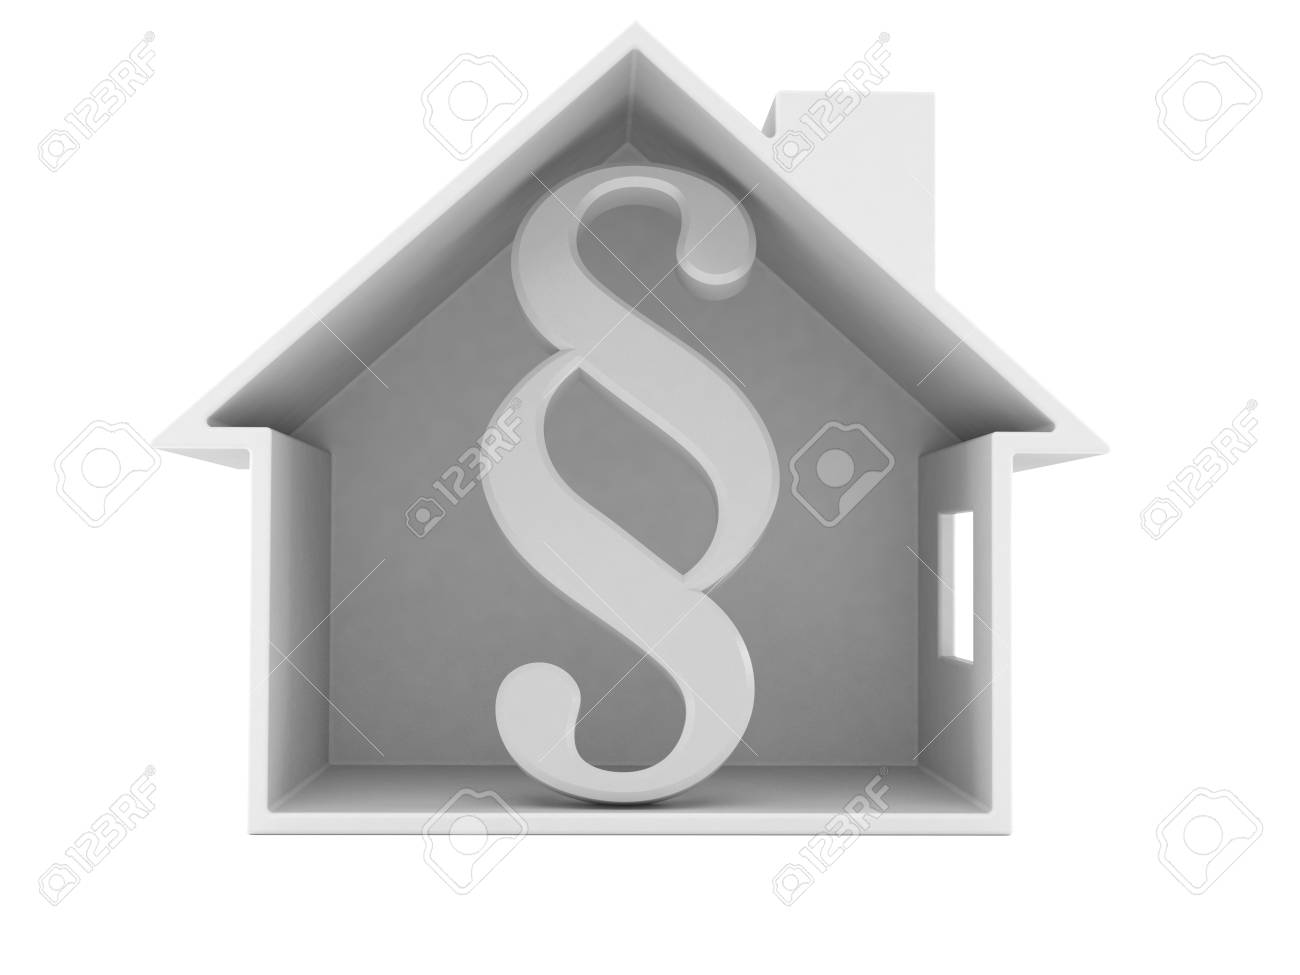 Paragraph Symbol Inside House Cross Section Isolated On White